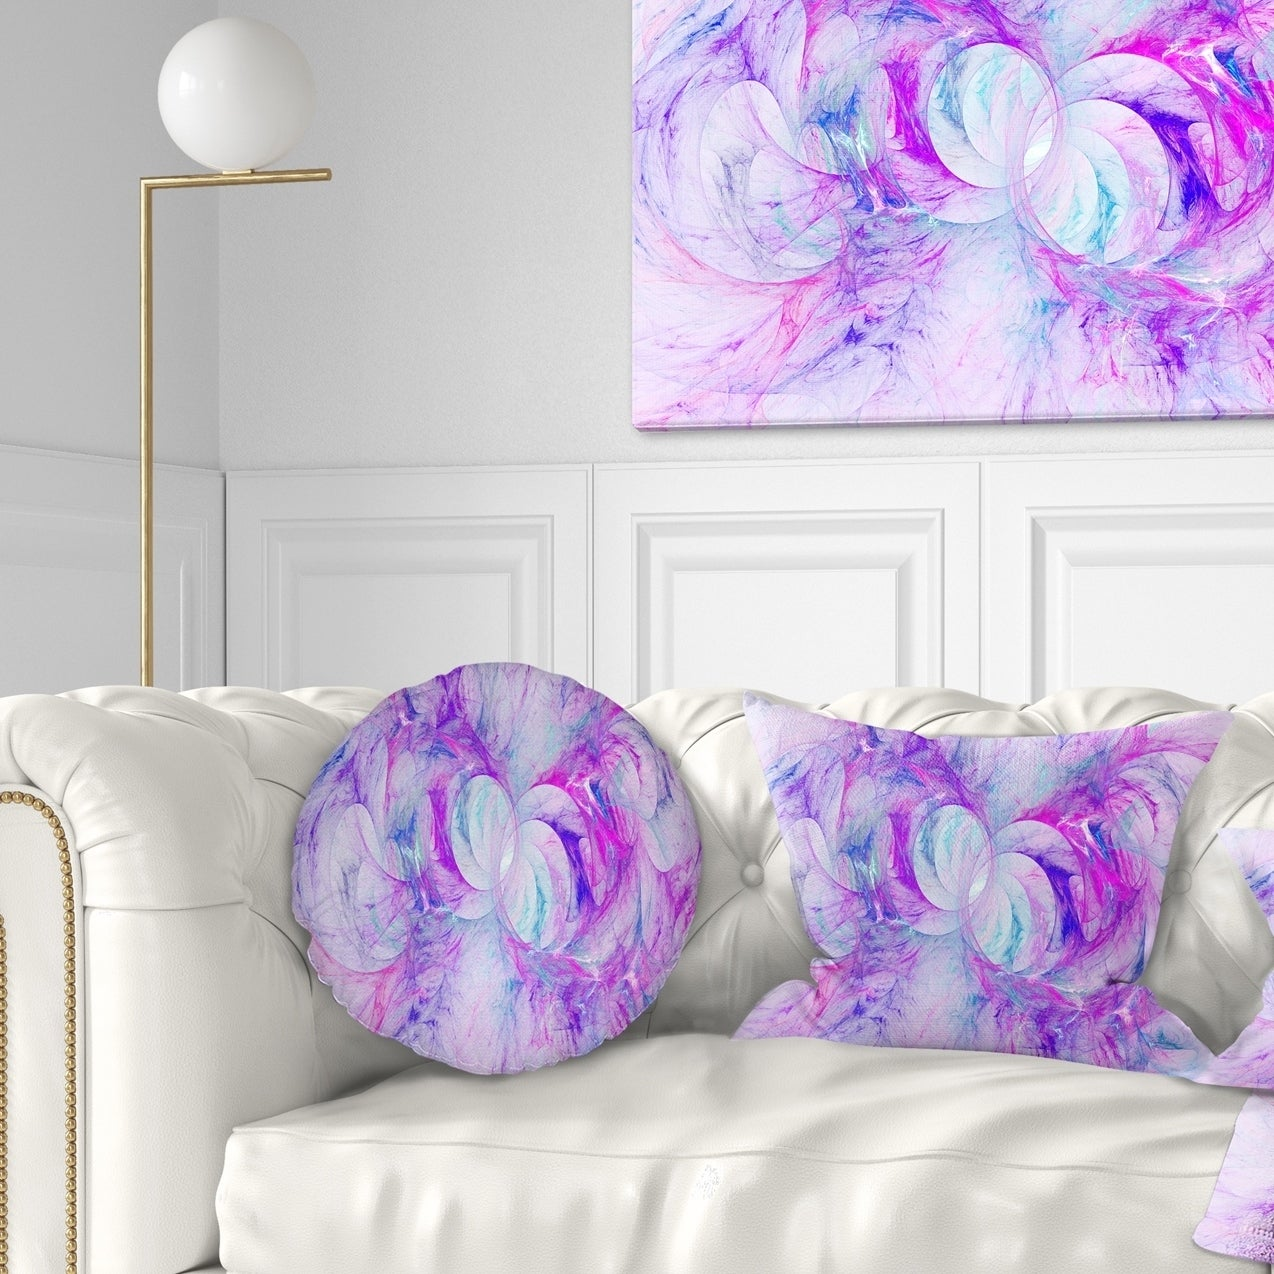 Sofa 18 X 18 Designart Cu14471 18 18 Unique Purple Fractal Art Pattern Abstract Throw Cushion Pillow Cover For Living Room Throw Pillow Covers Home Kitchen